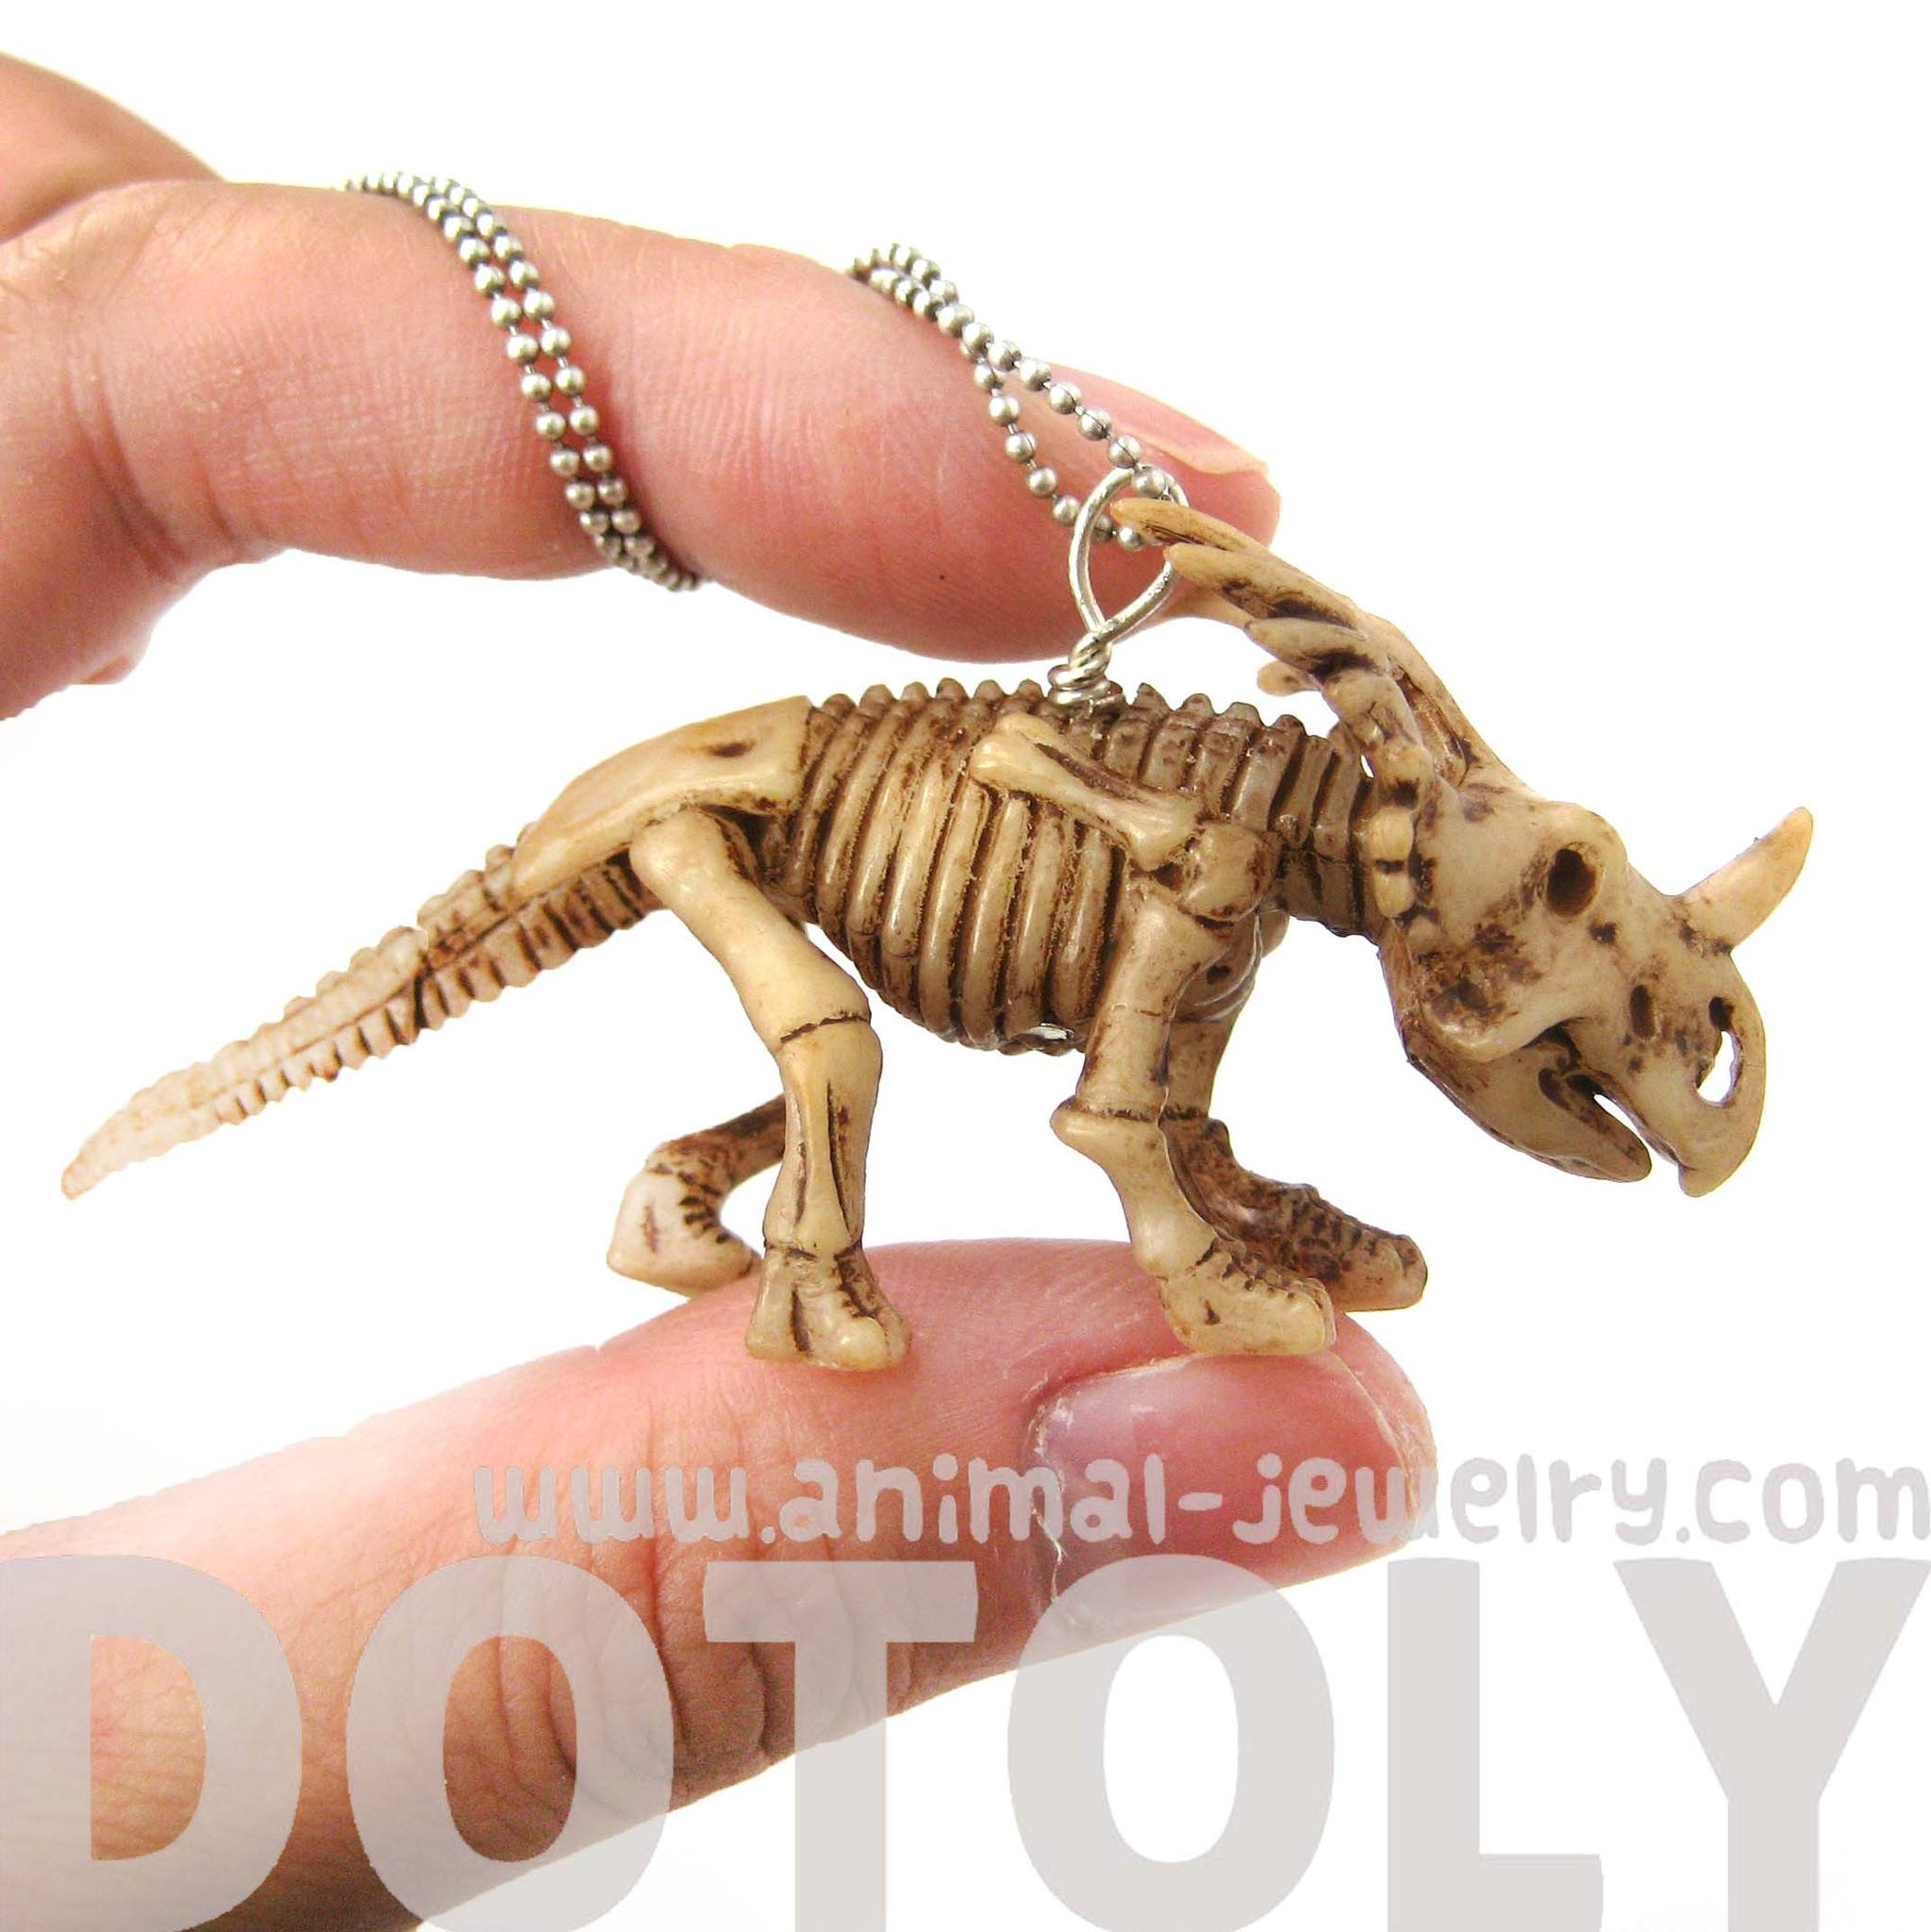 styracosaurus-triceratops-dinosaur-fossil-skeleton-pendant-necklace-animal-jewelry